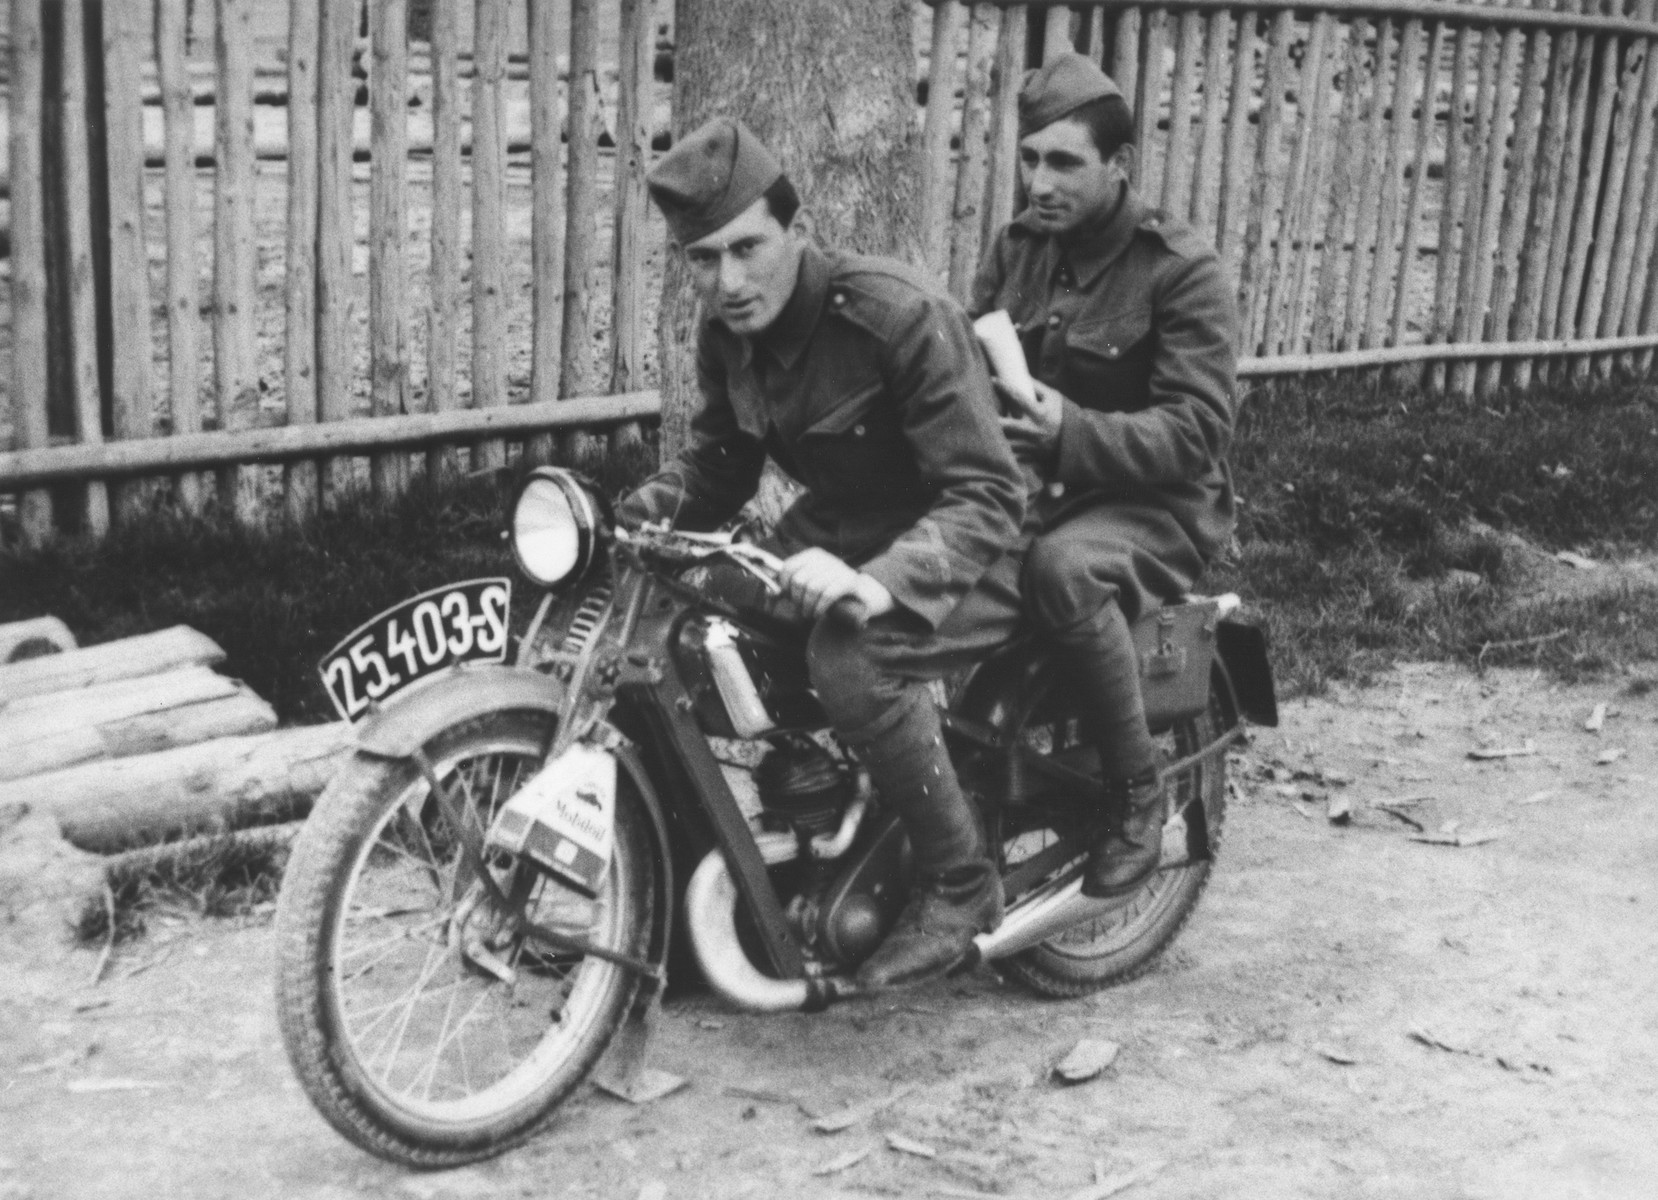 Two Jewish members of the Sixth Labor Battalion (VI Prapor) ride a motorcycle at a Slovak labor camp.